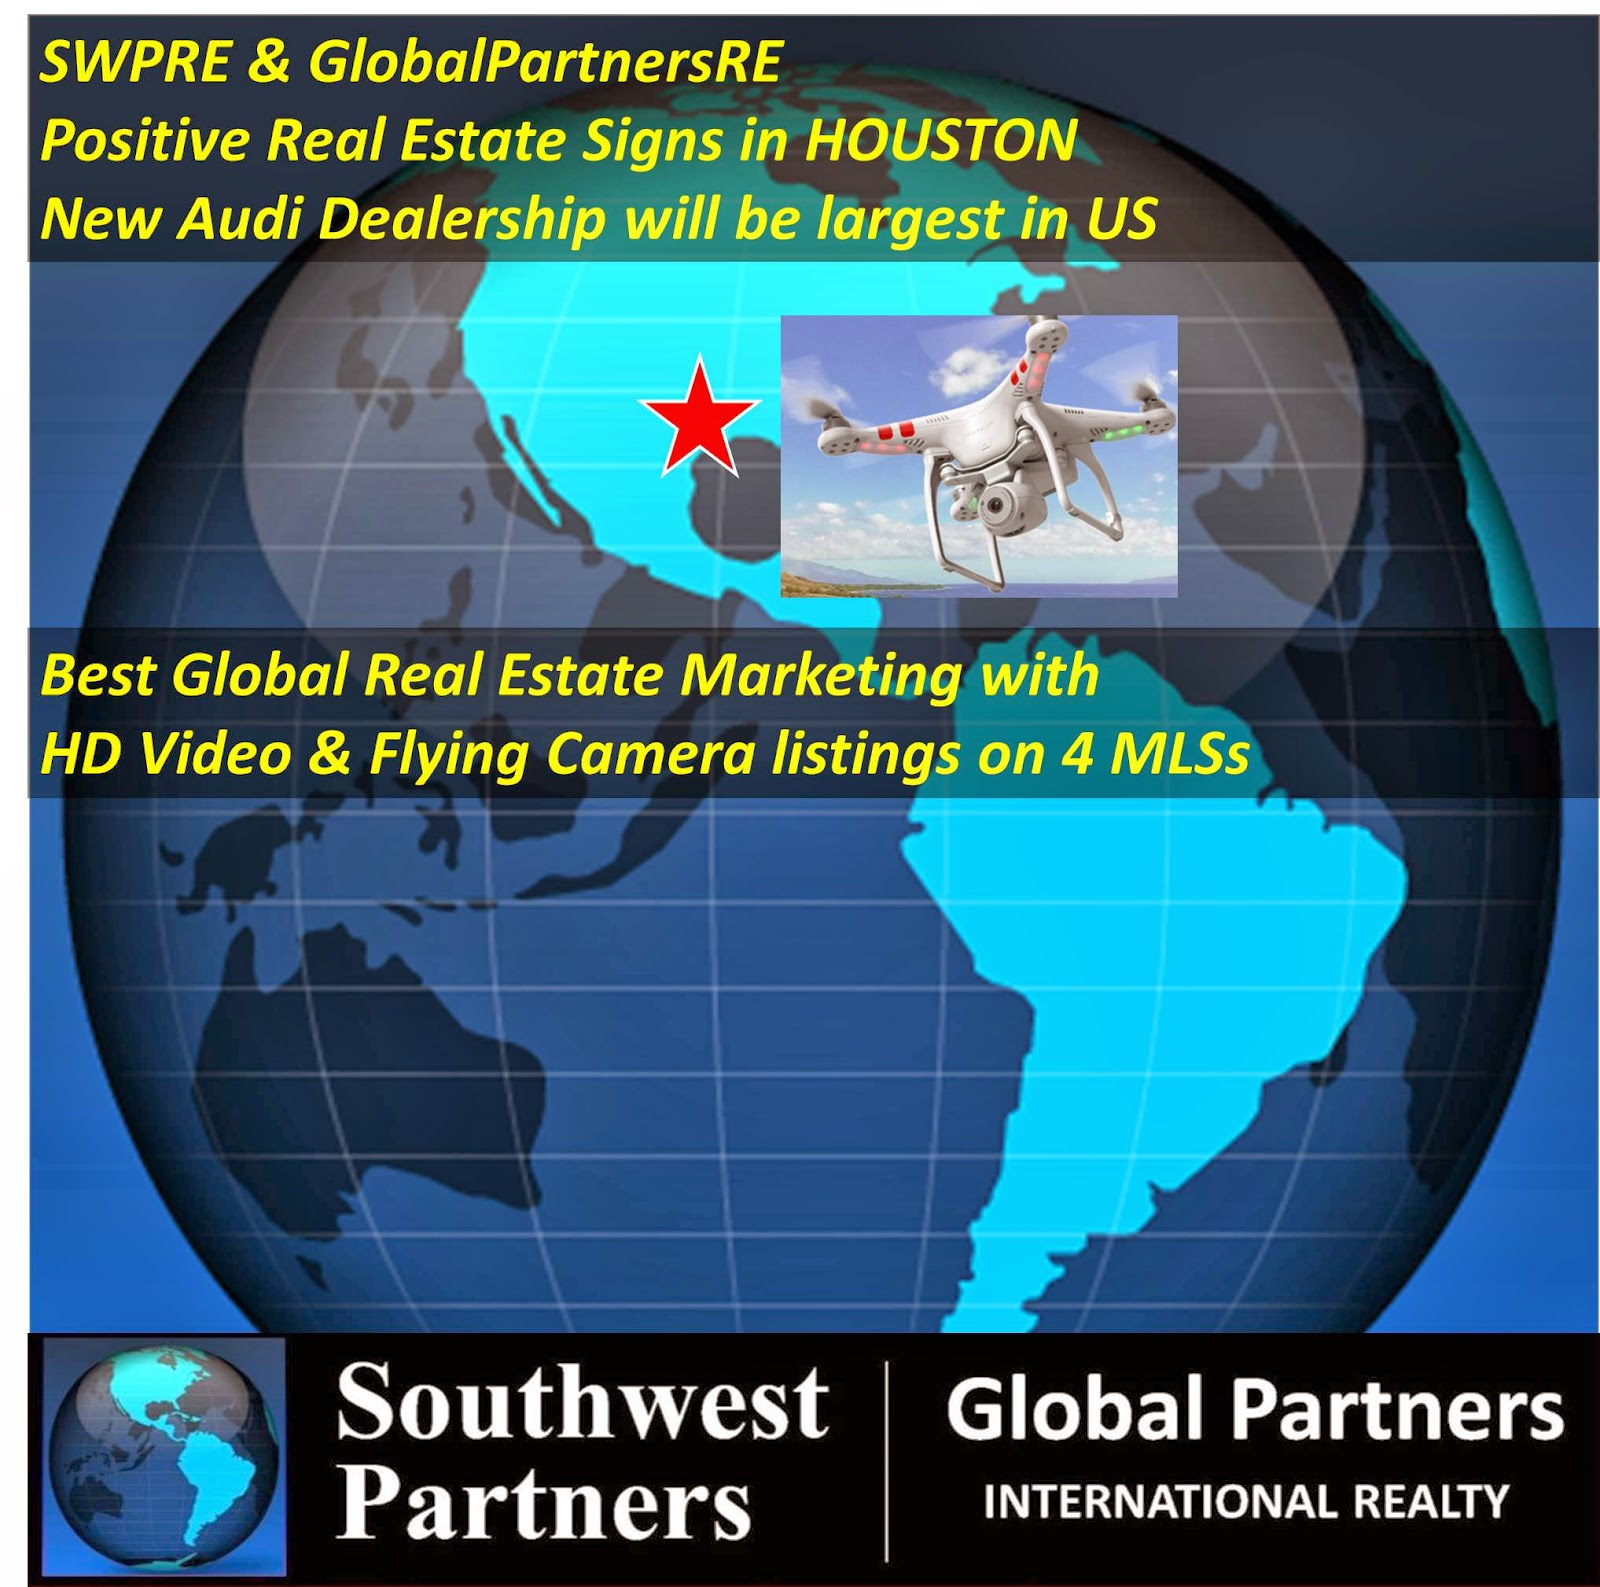 SWPRE And GlobalPartners RE Positive Real Estate Signs In